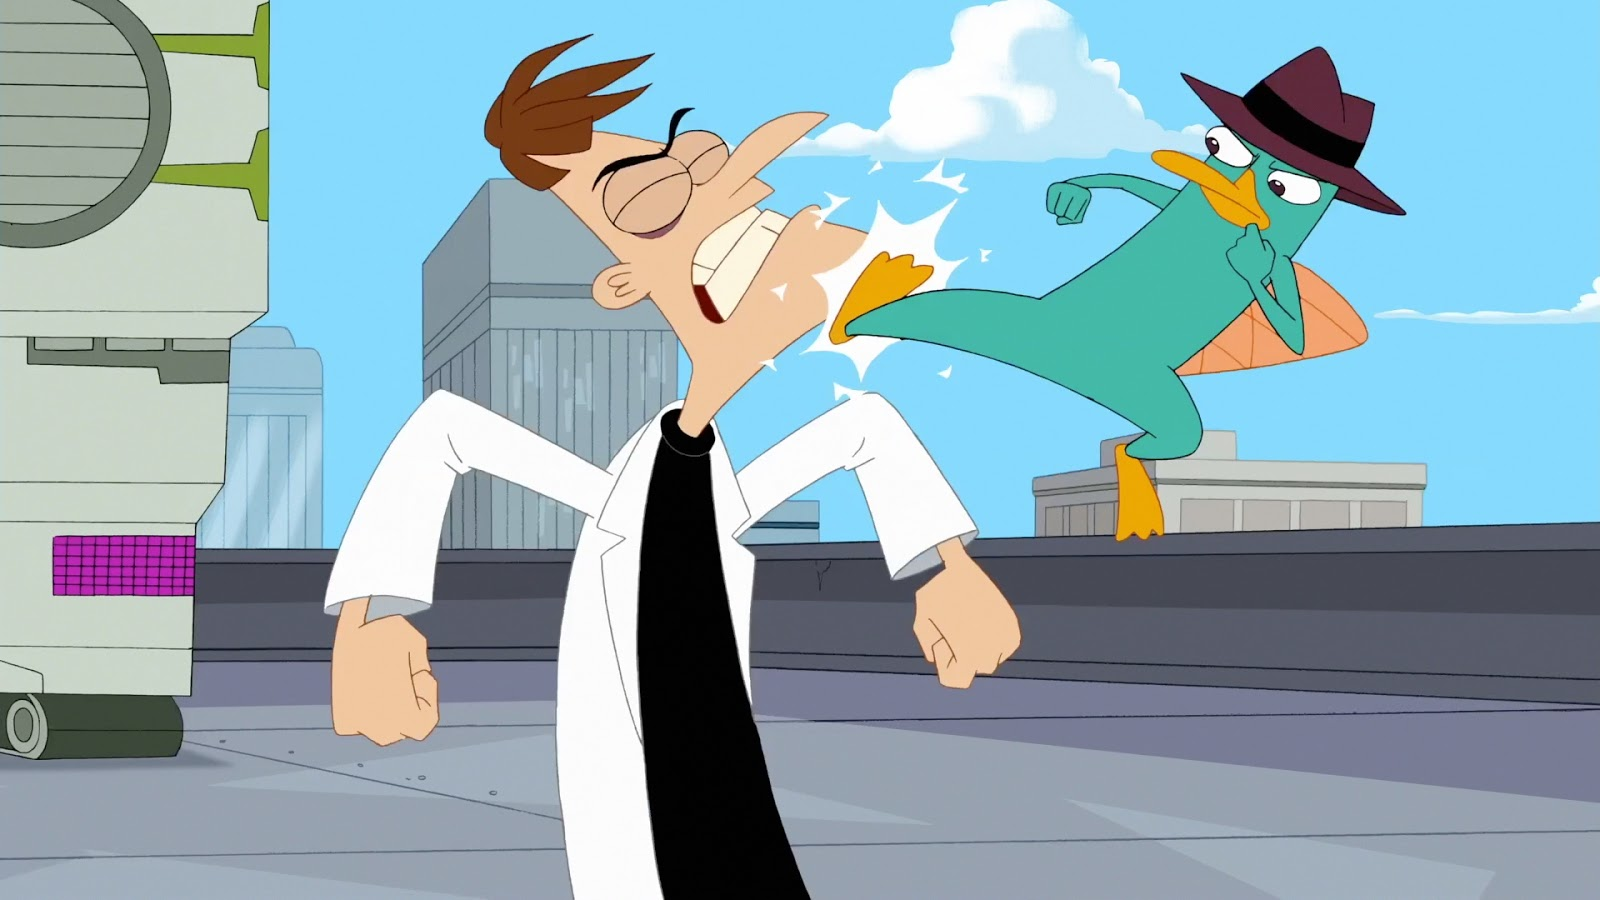 Perry+vs+Doof+1.jpg